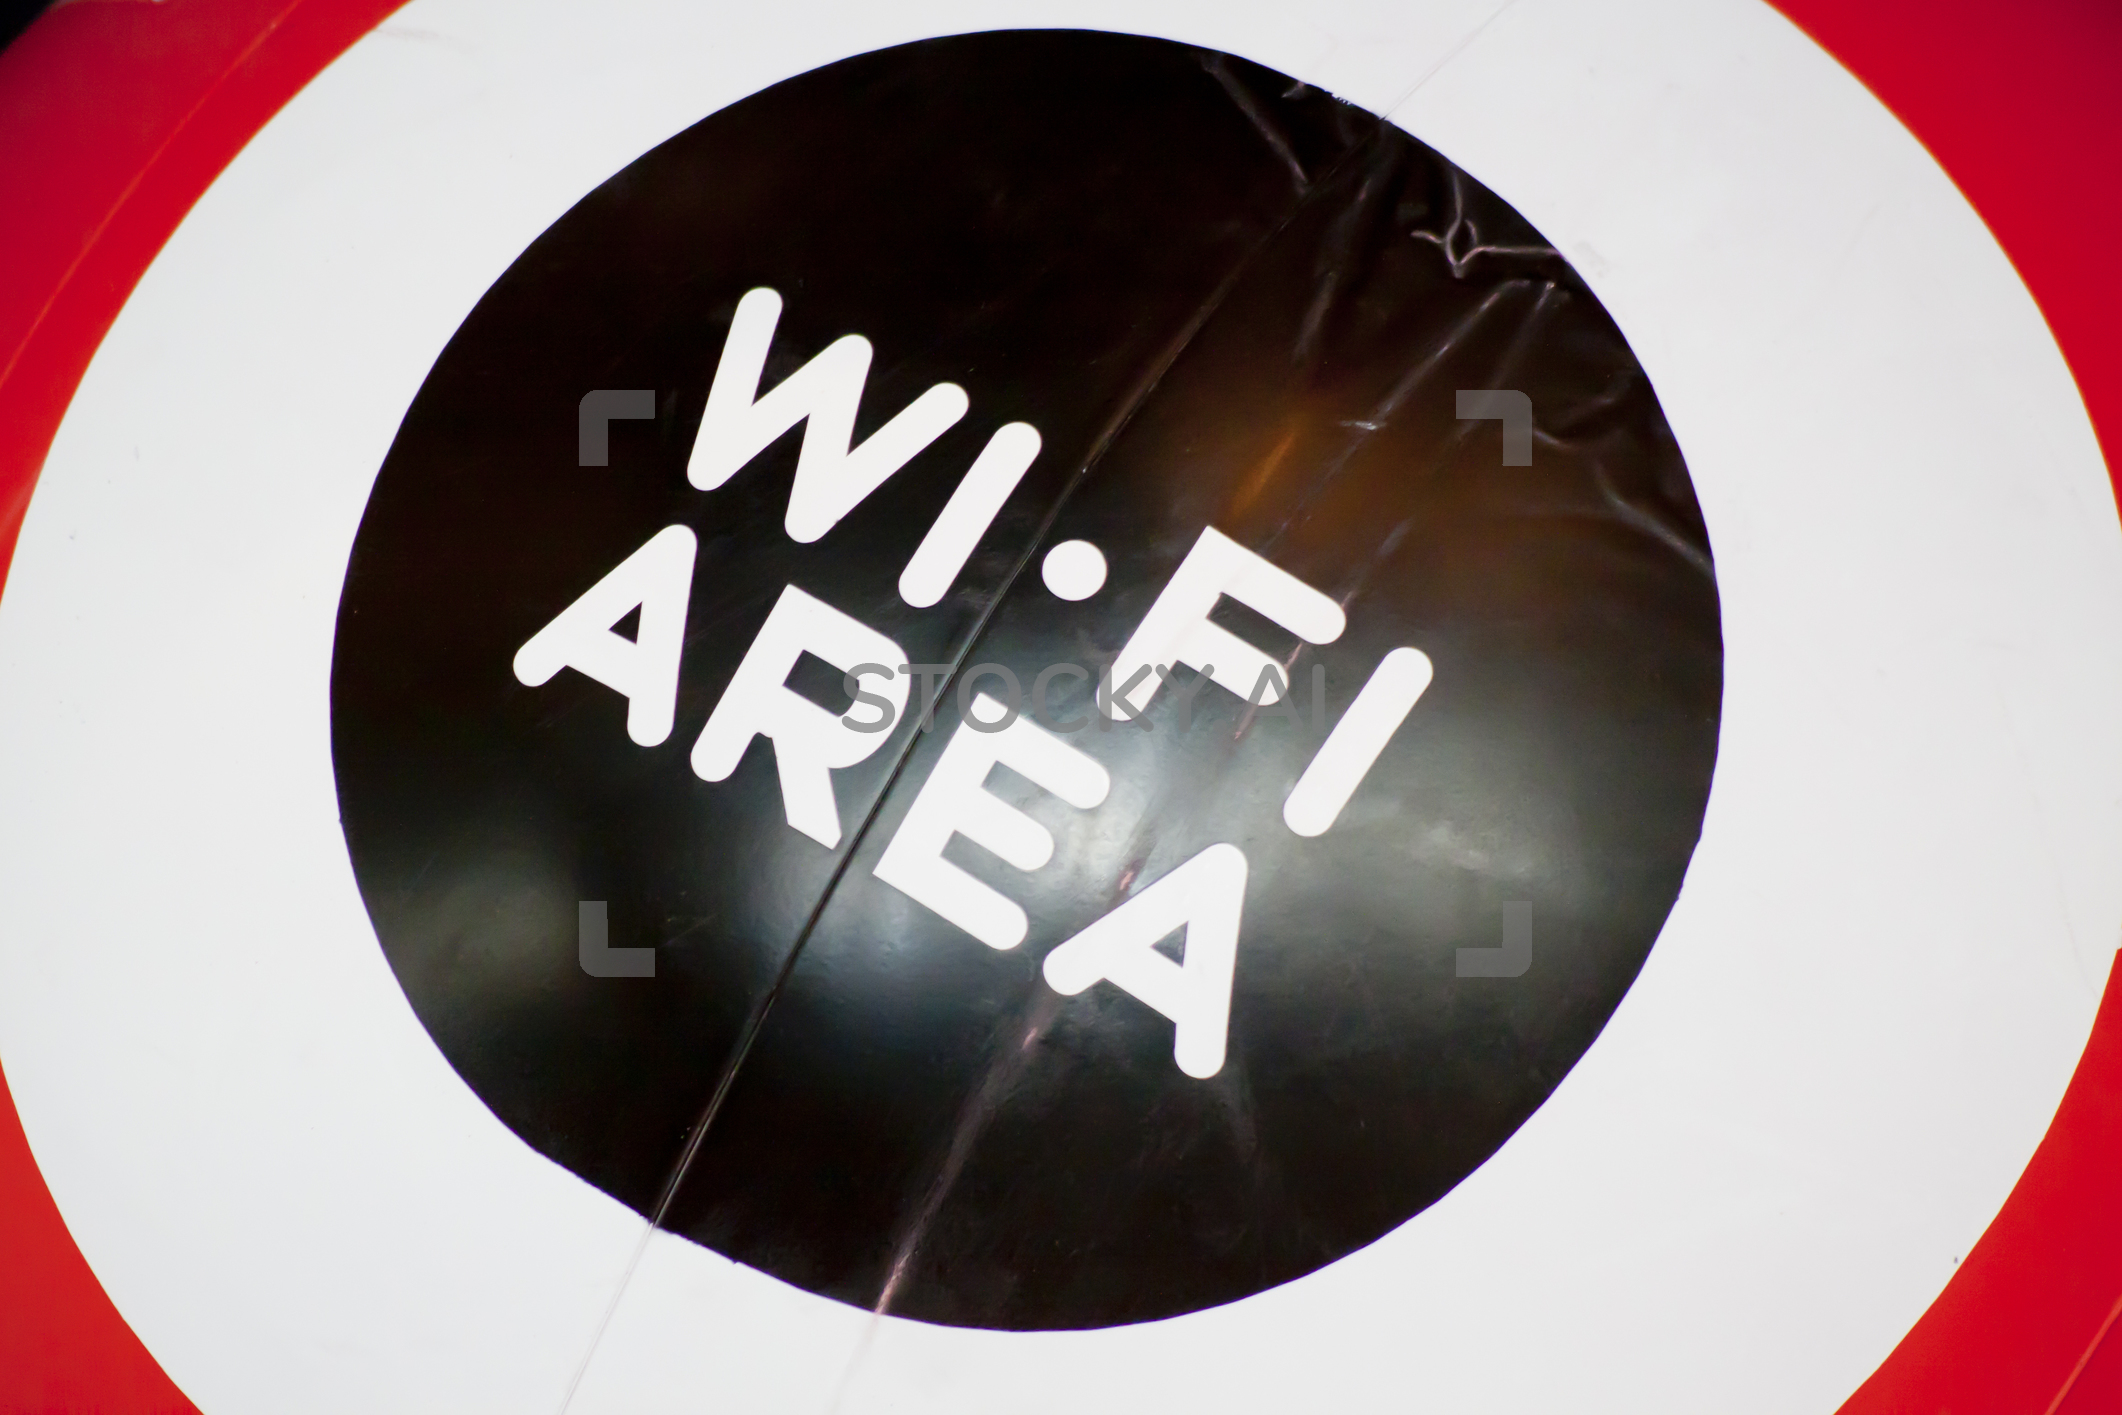 image of wifi zone